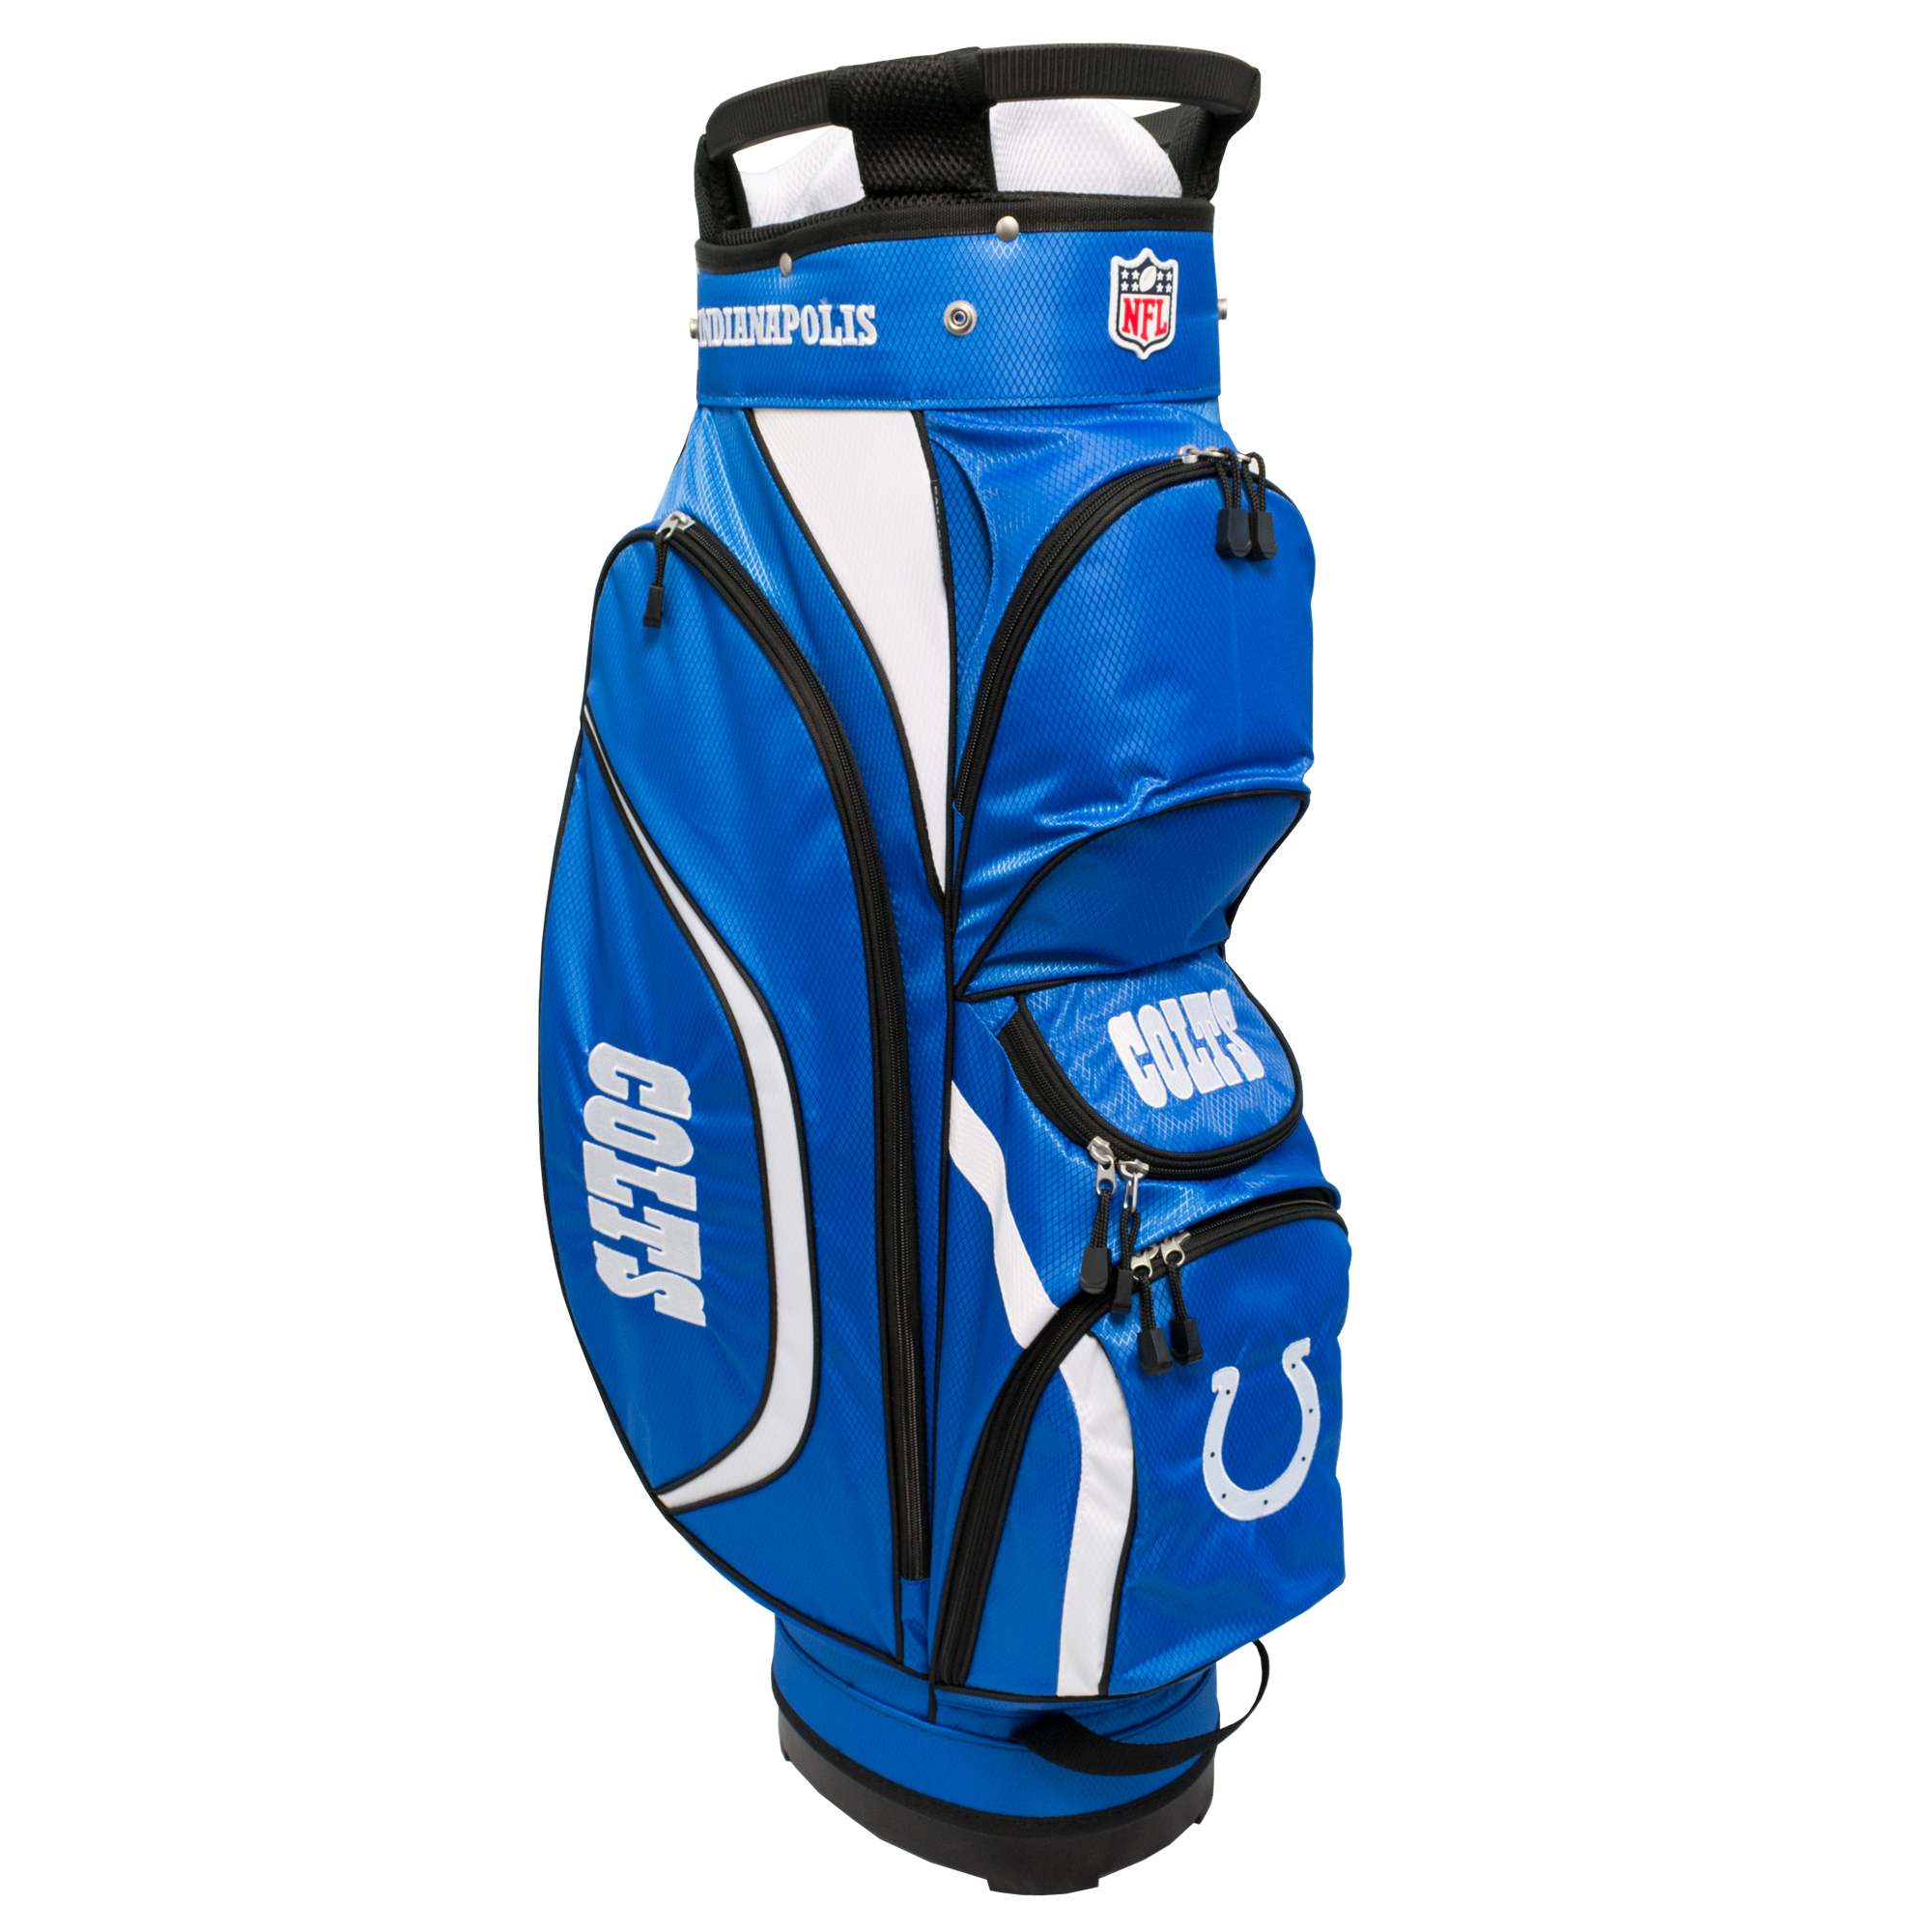 f50bc8ad003 Team Golf NFL Indianapolis Colts Clubhouse Golf Cart Bag